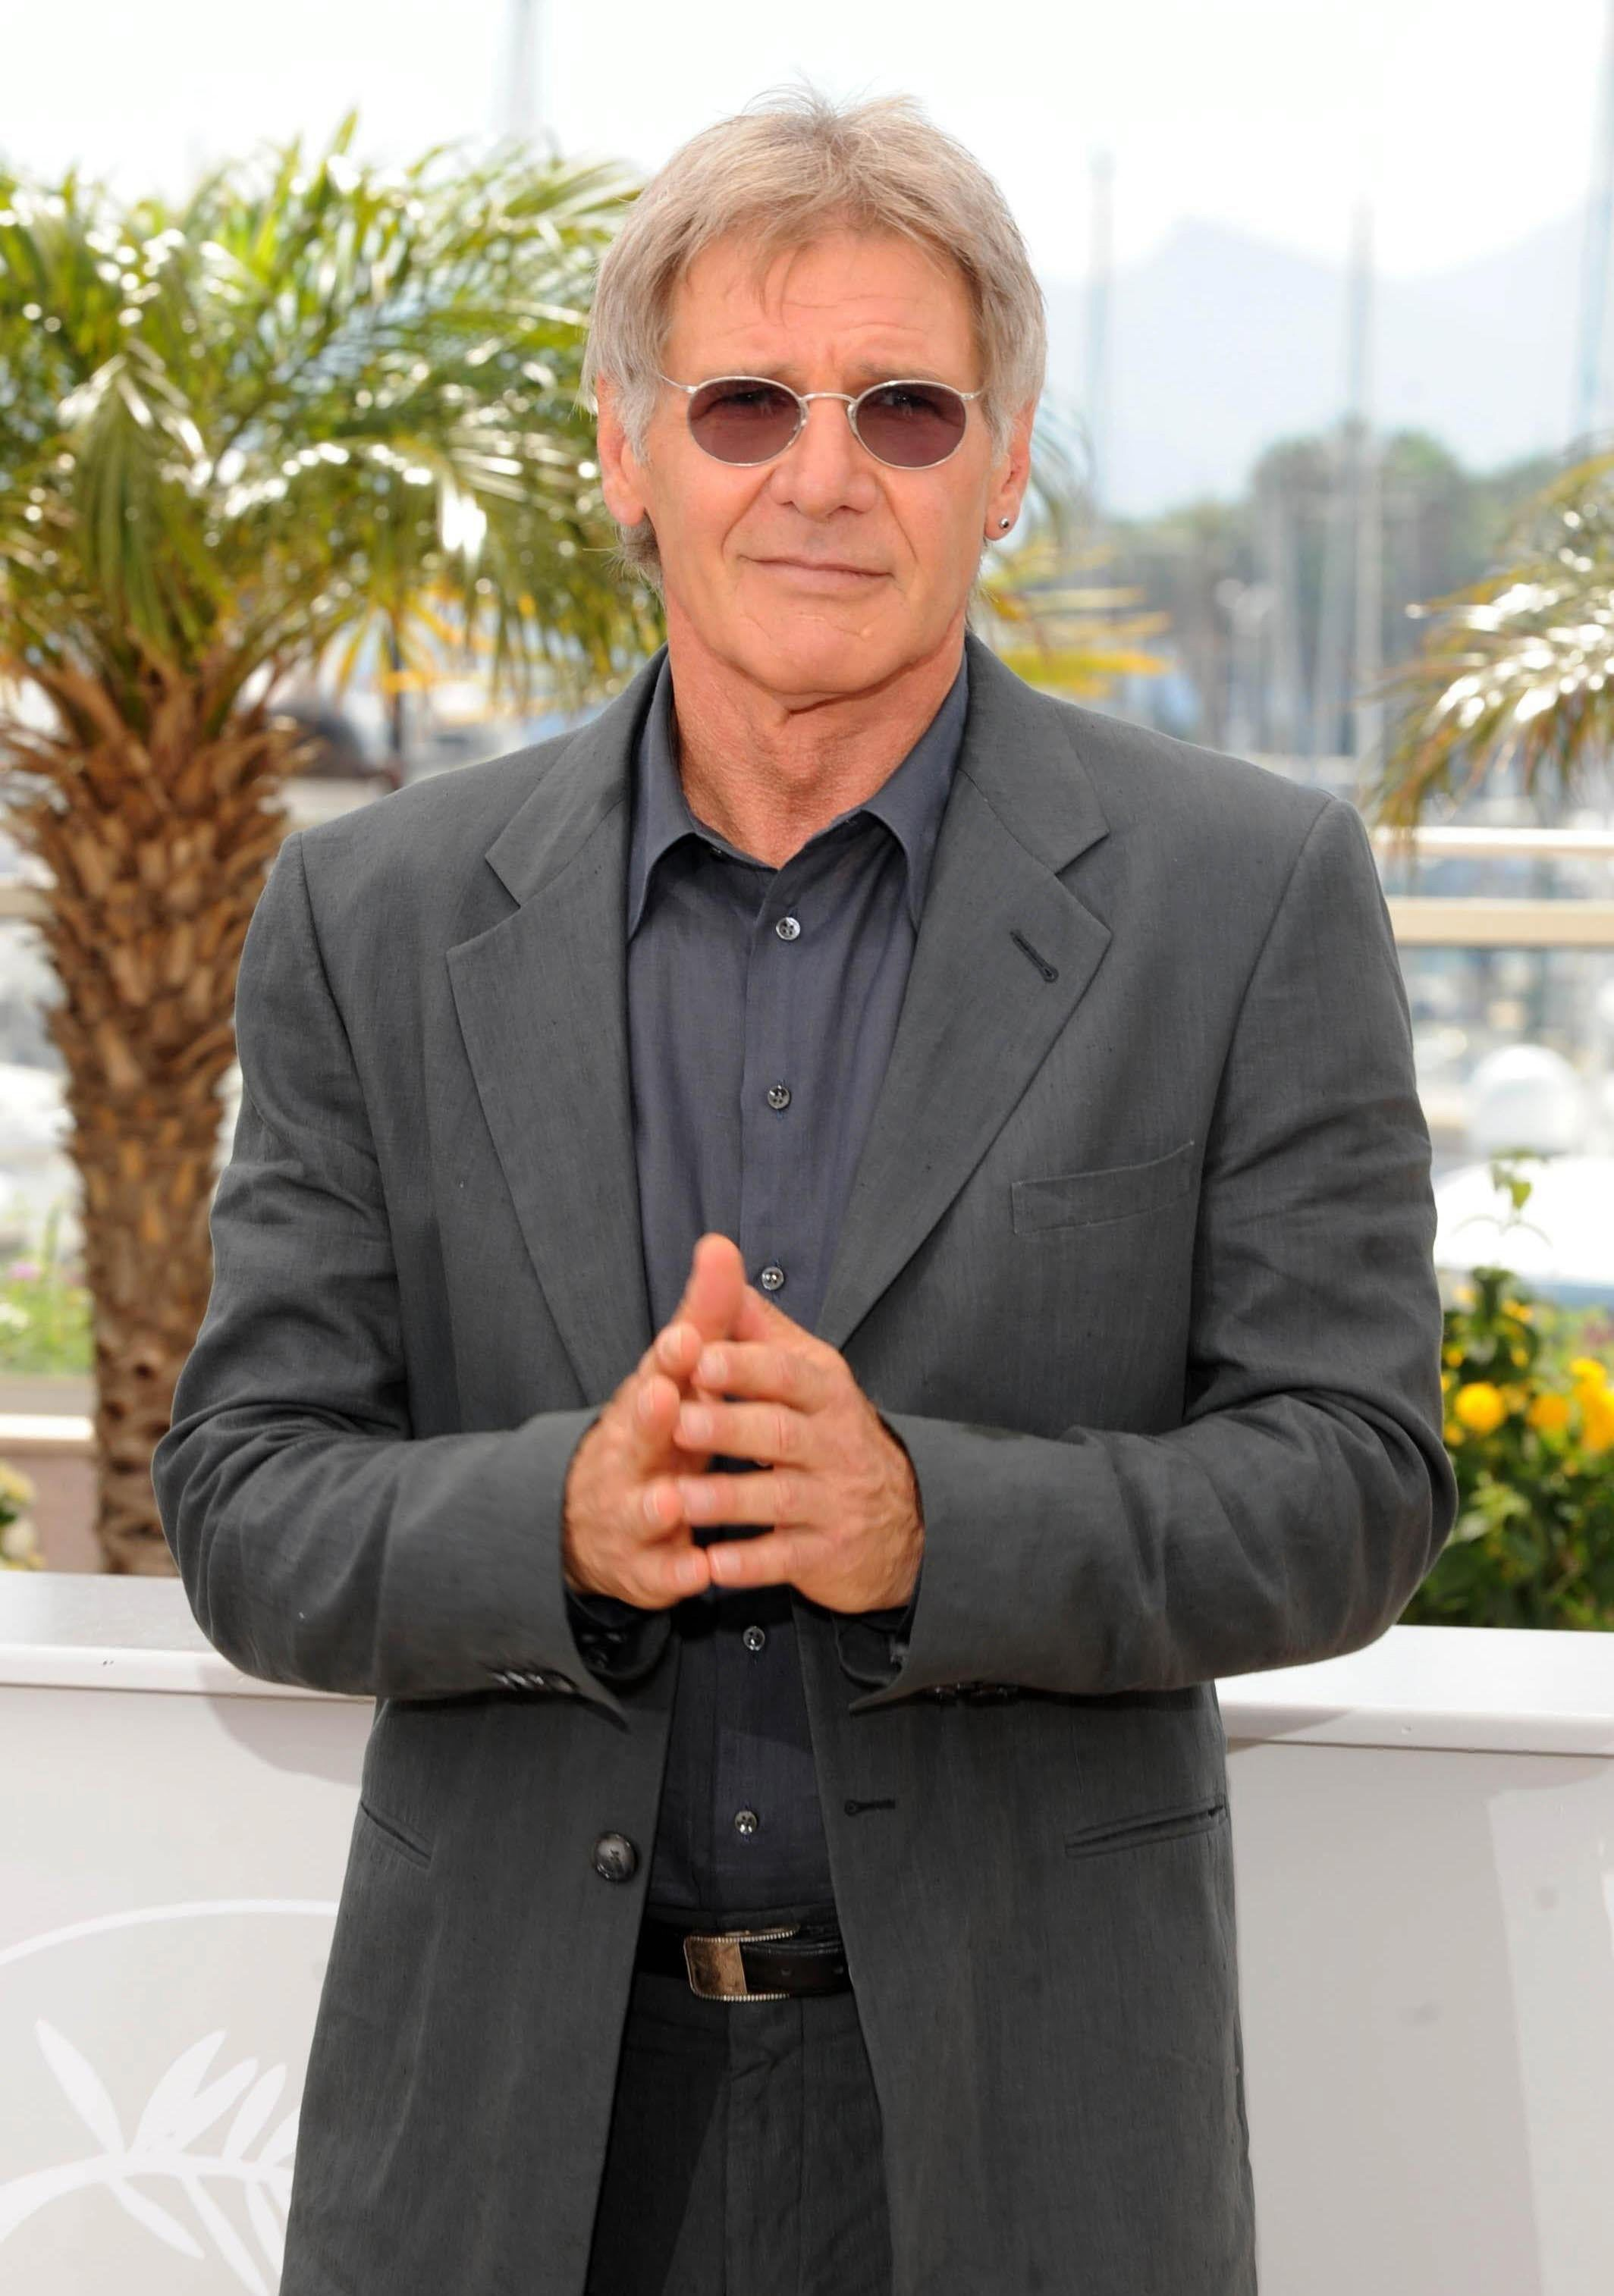 Things You Might Not Know About Harrison Ford — Plus More On Harrison Ford